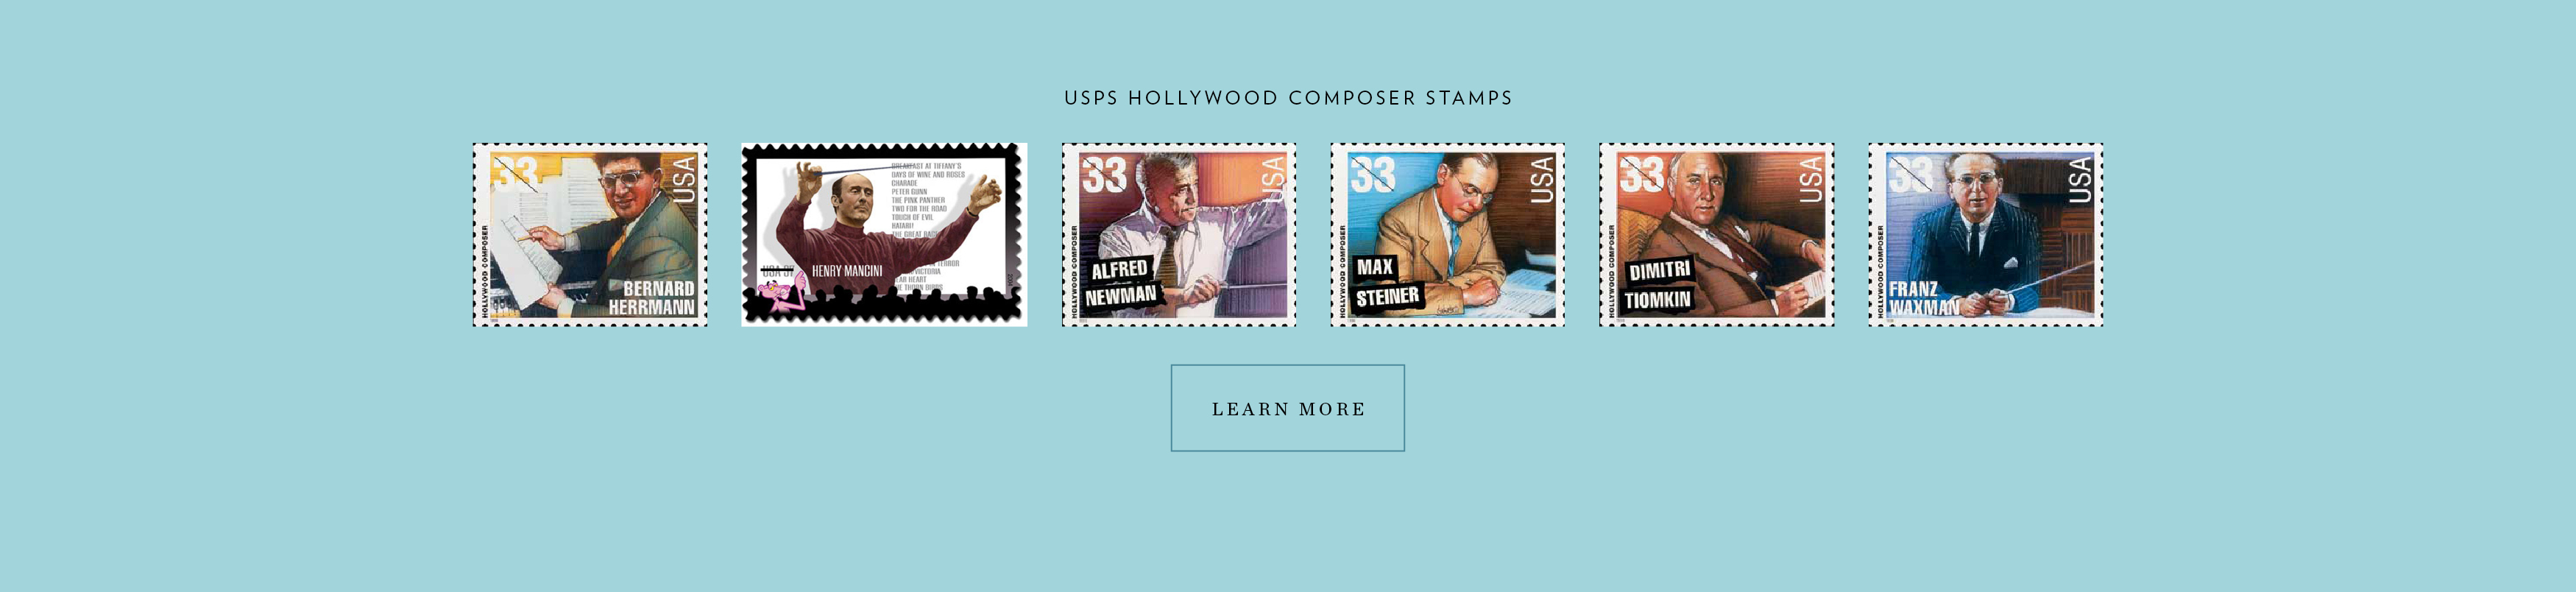 usps-hollywood-composer-stamps-tnv